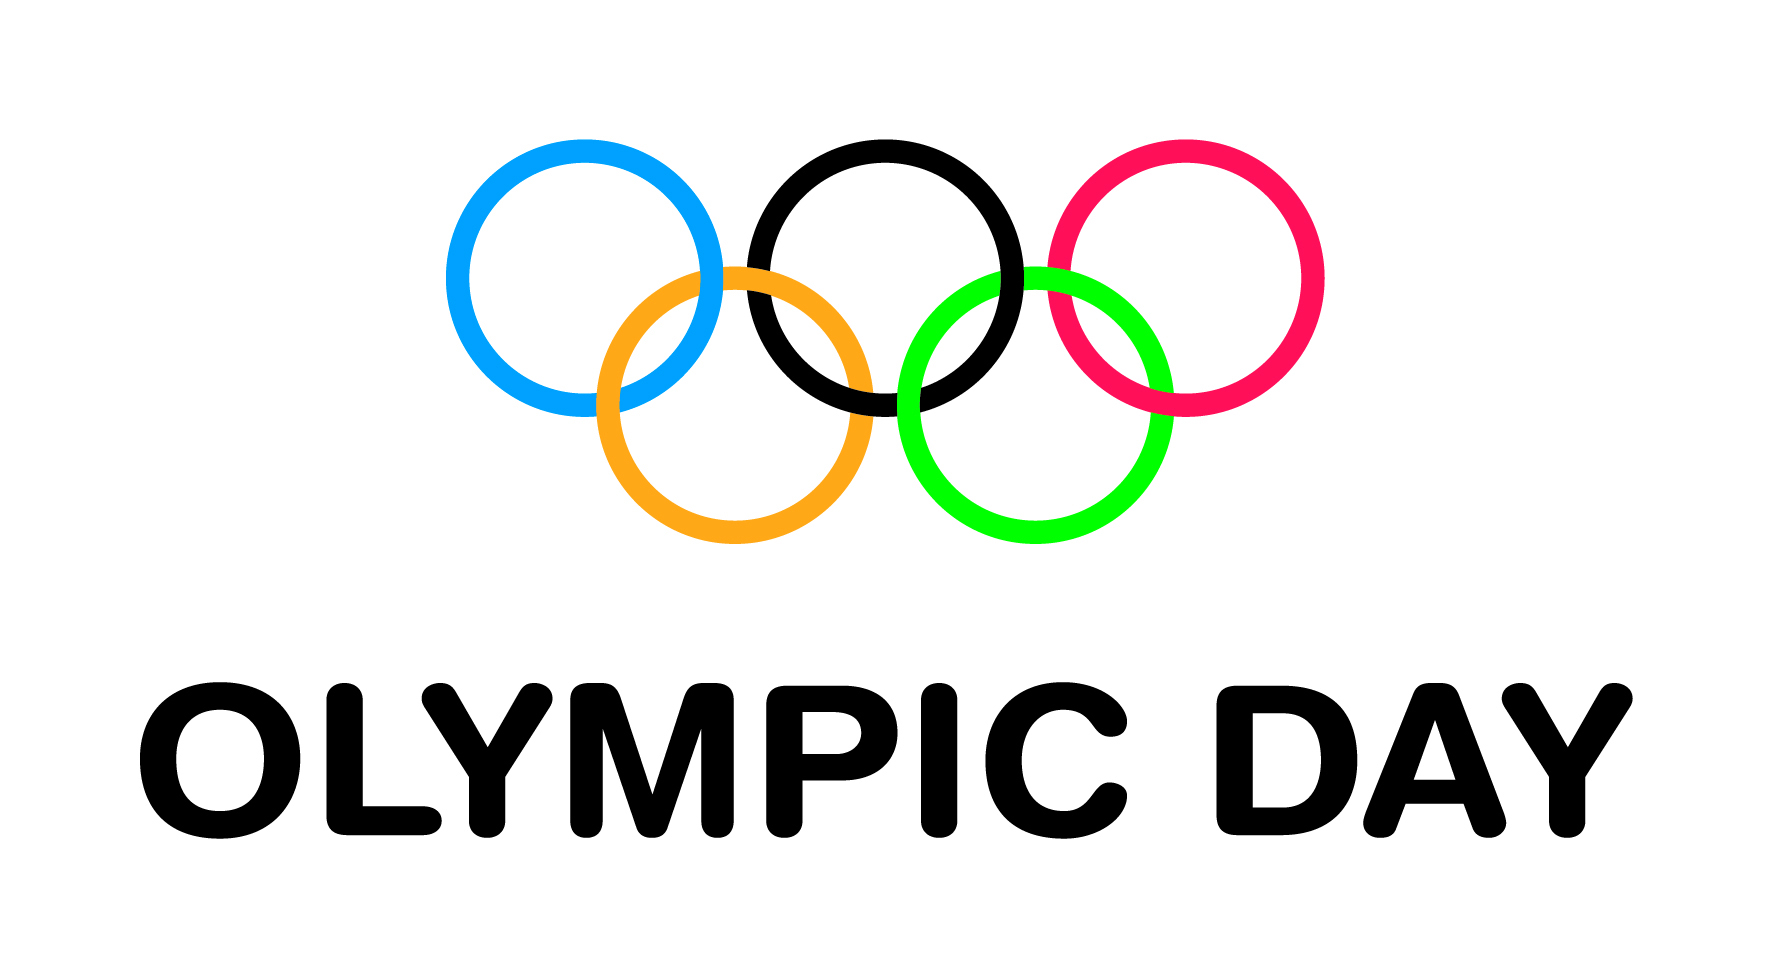 La84 Foundation Announces Olympic Day Celebrations At 130 Lausd Free Online Printed Circuit Board Design Tools From Aspen Labs And Elementary Middle Schools